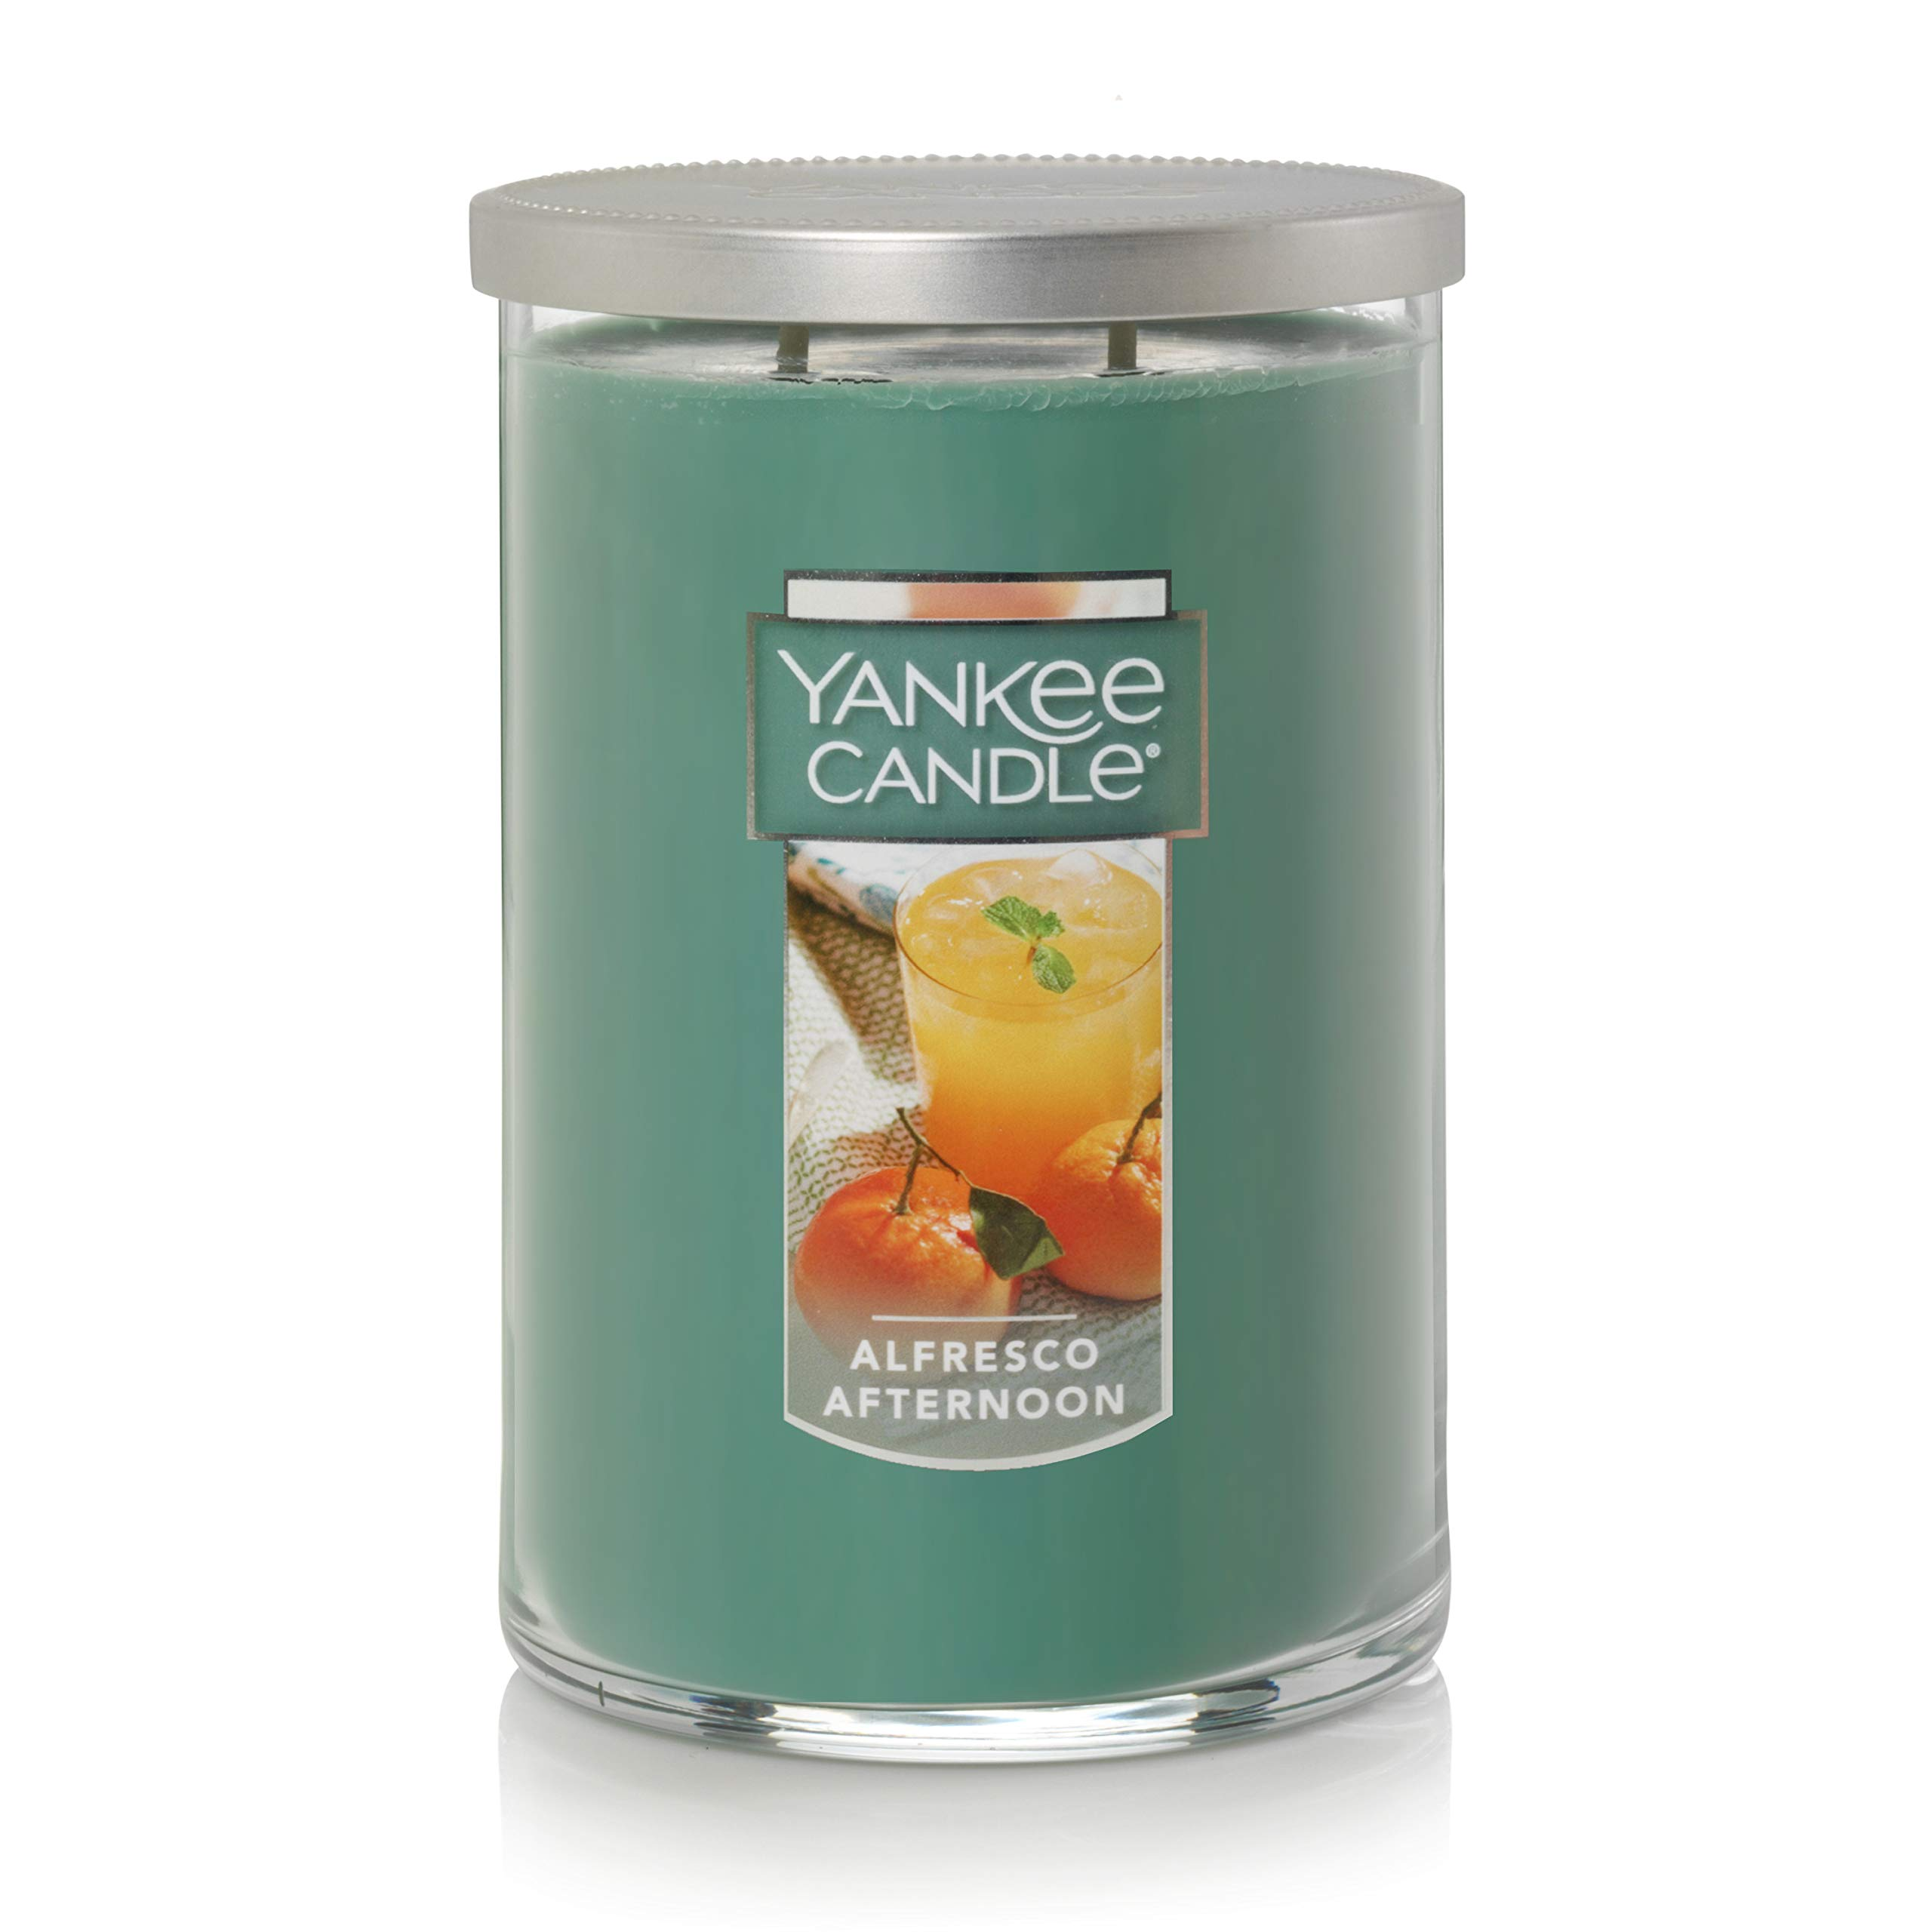 Yankee Candle Large 2-Wick Tumbler Scented Candle, Alfresco Afternoon